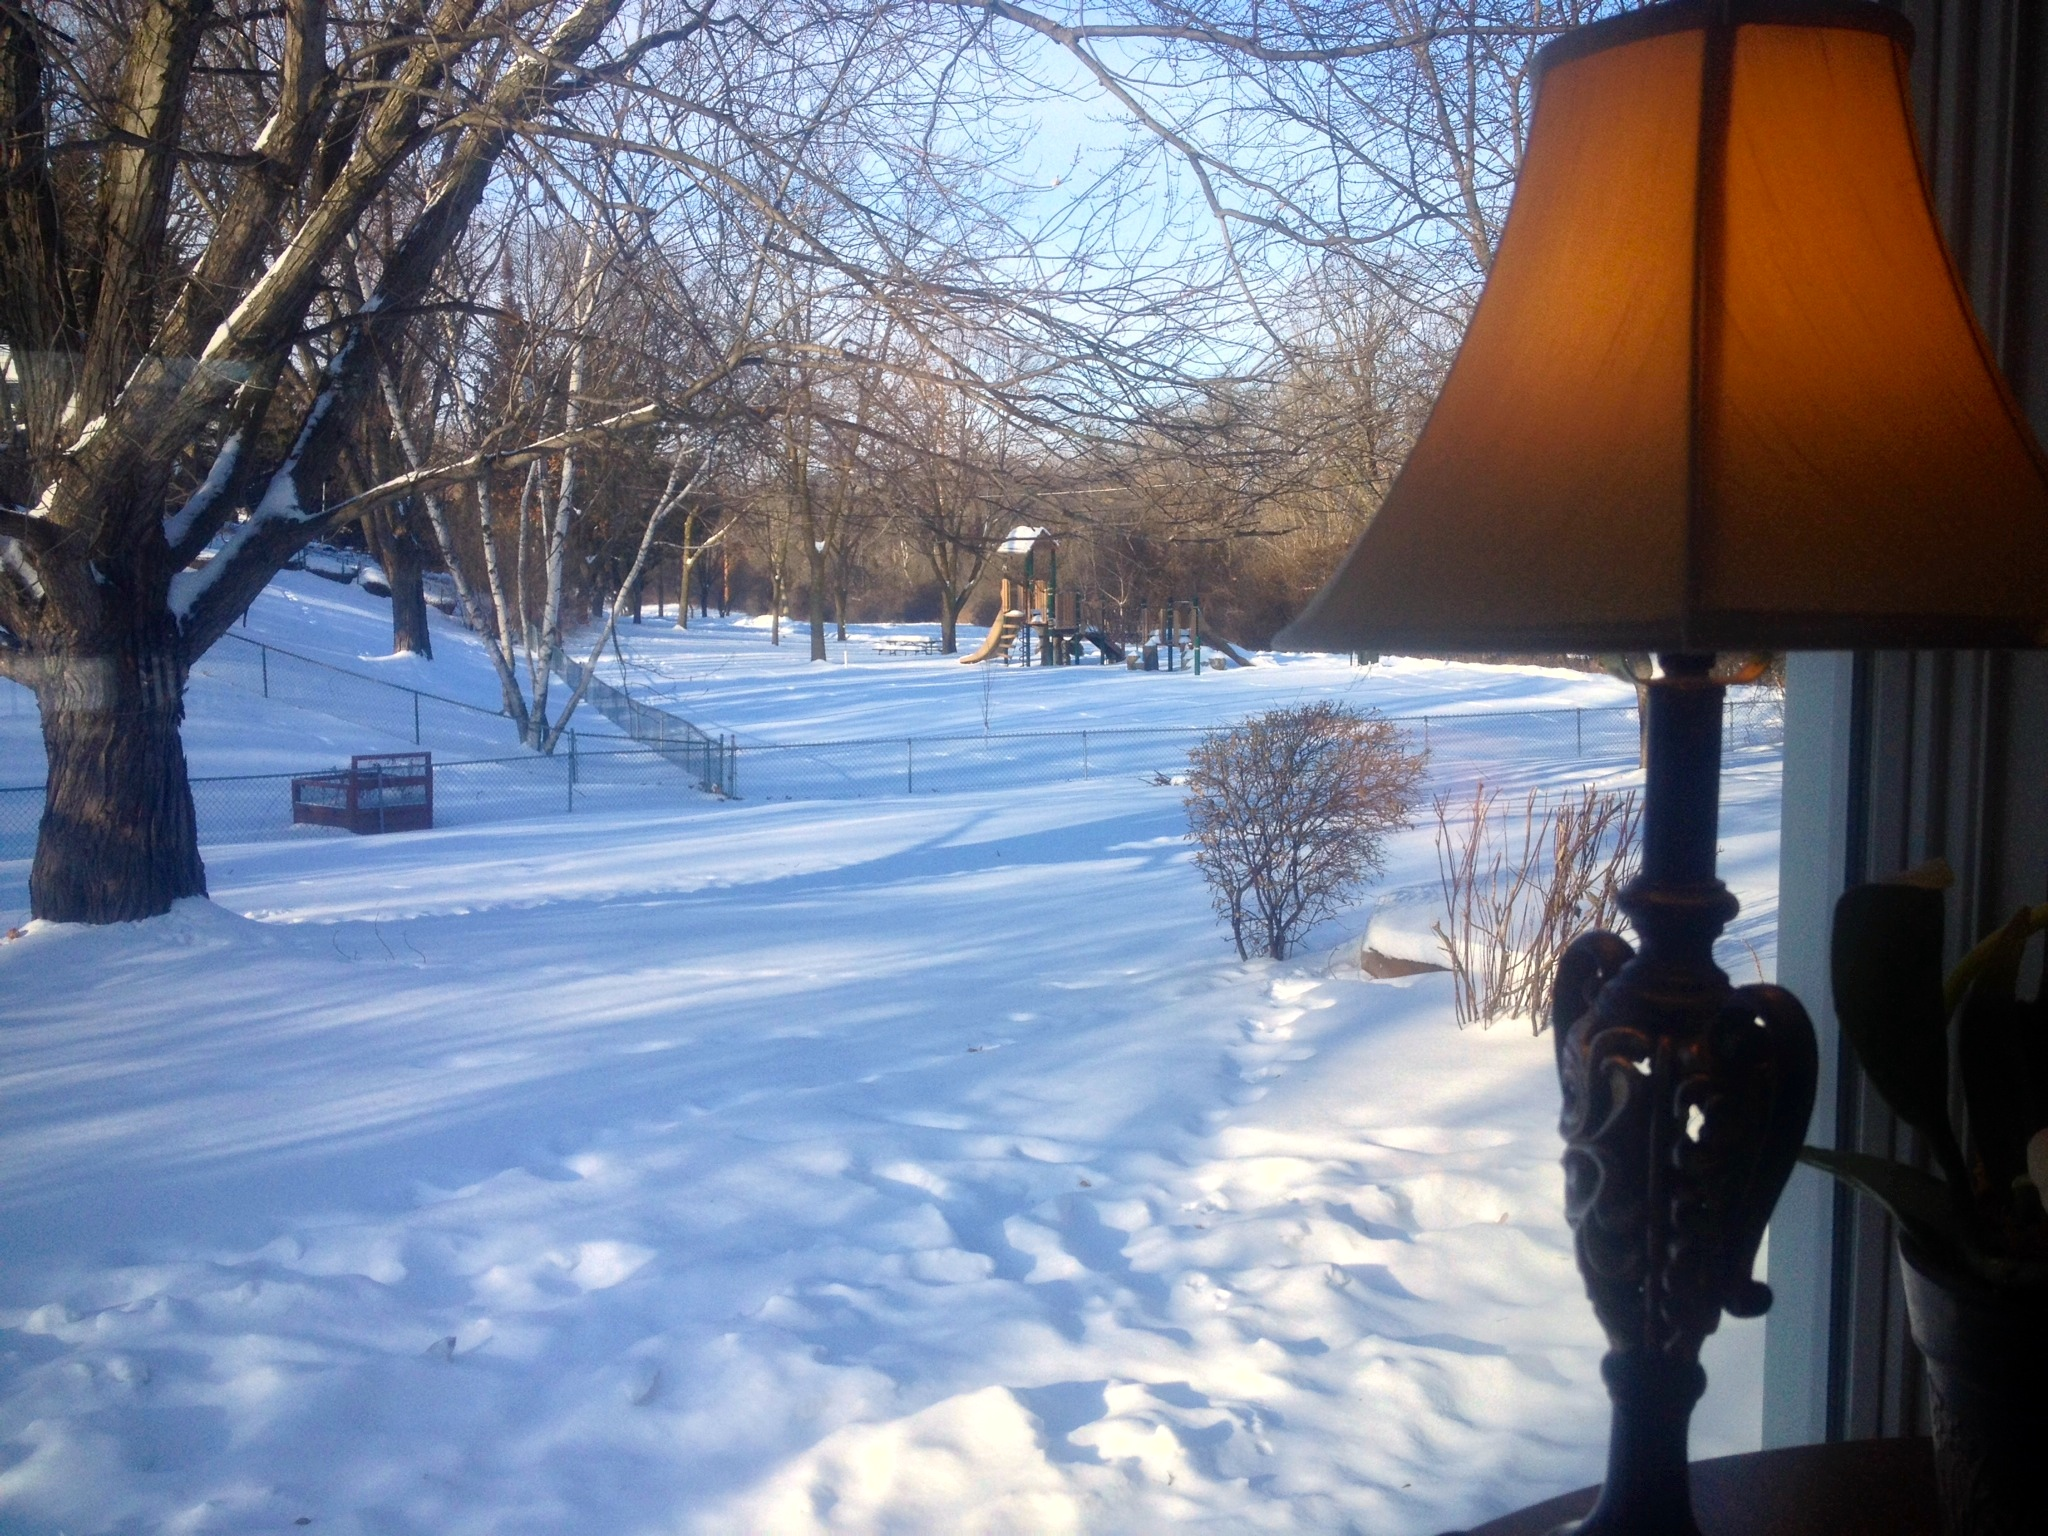 Cold but beautiful outside my window this morning.